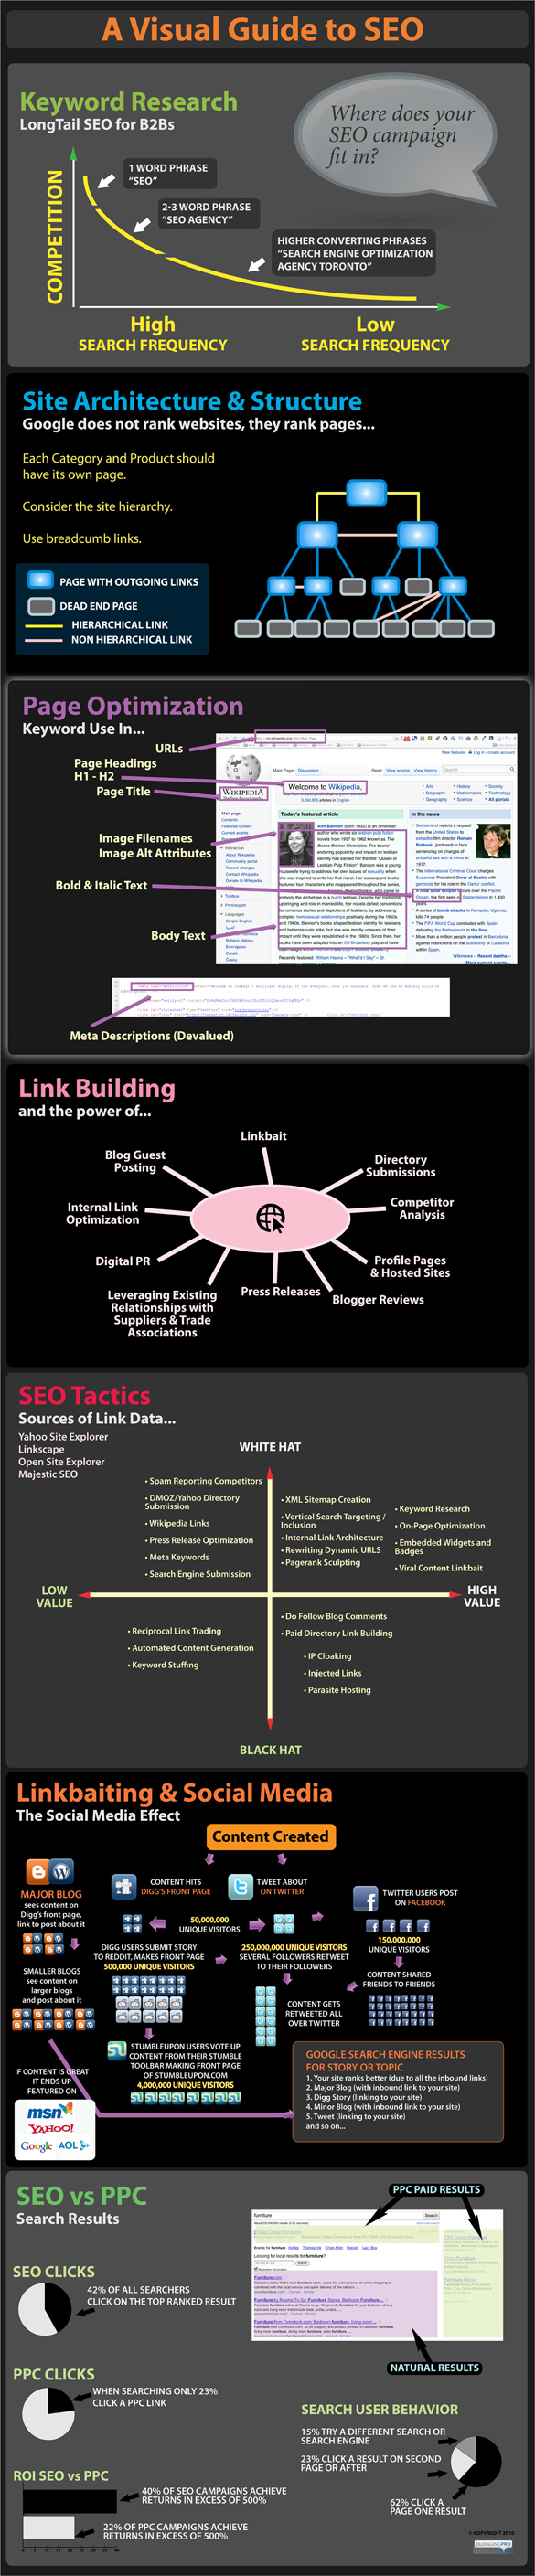 Visual guide to SEO